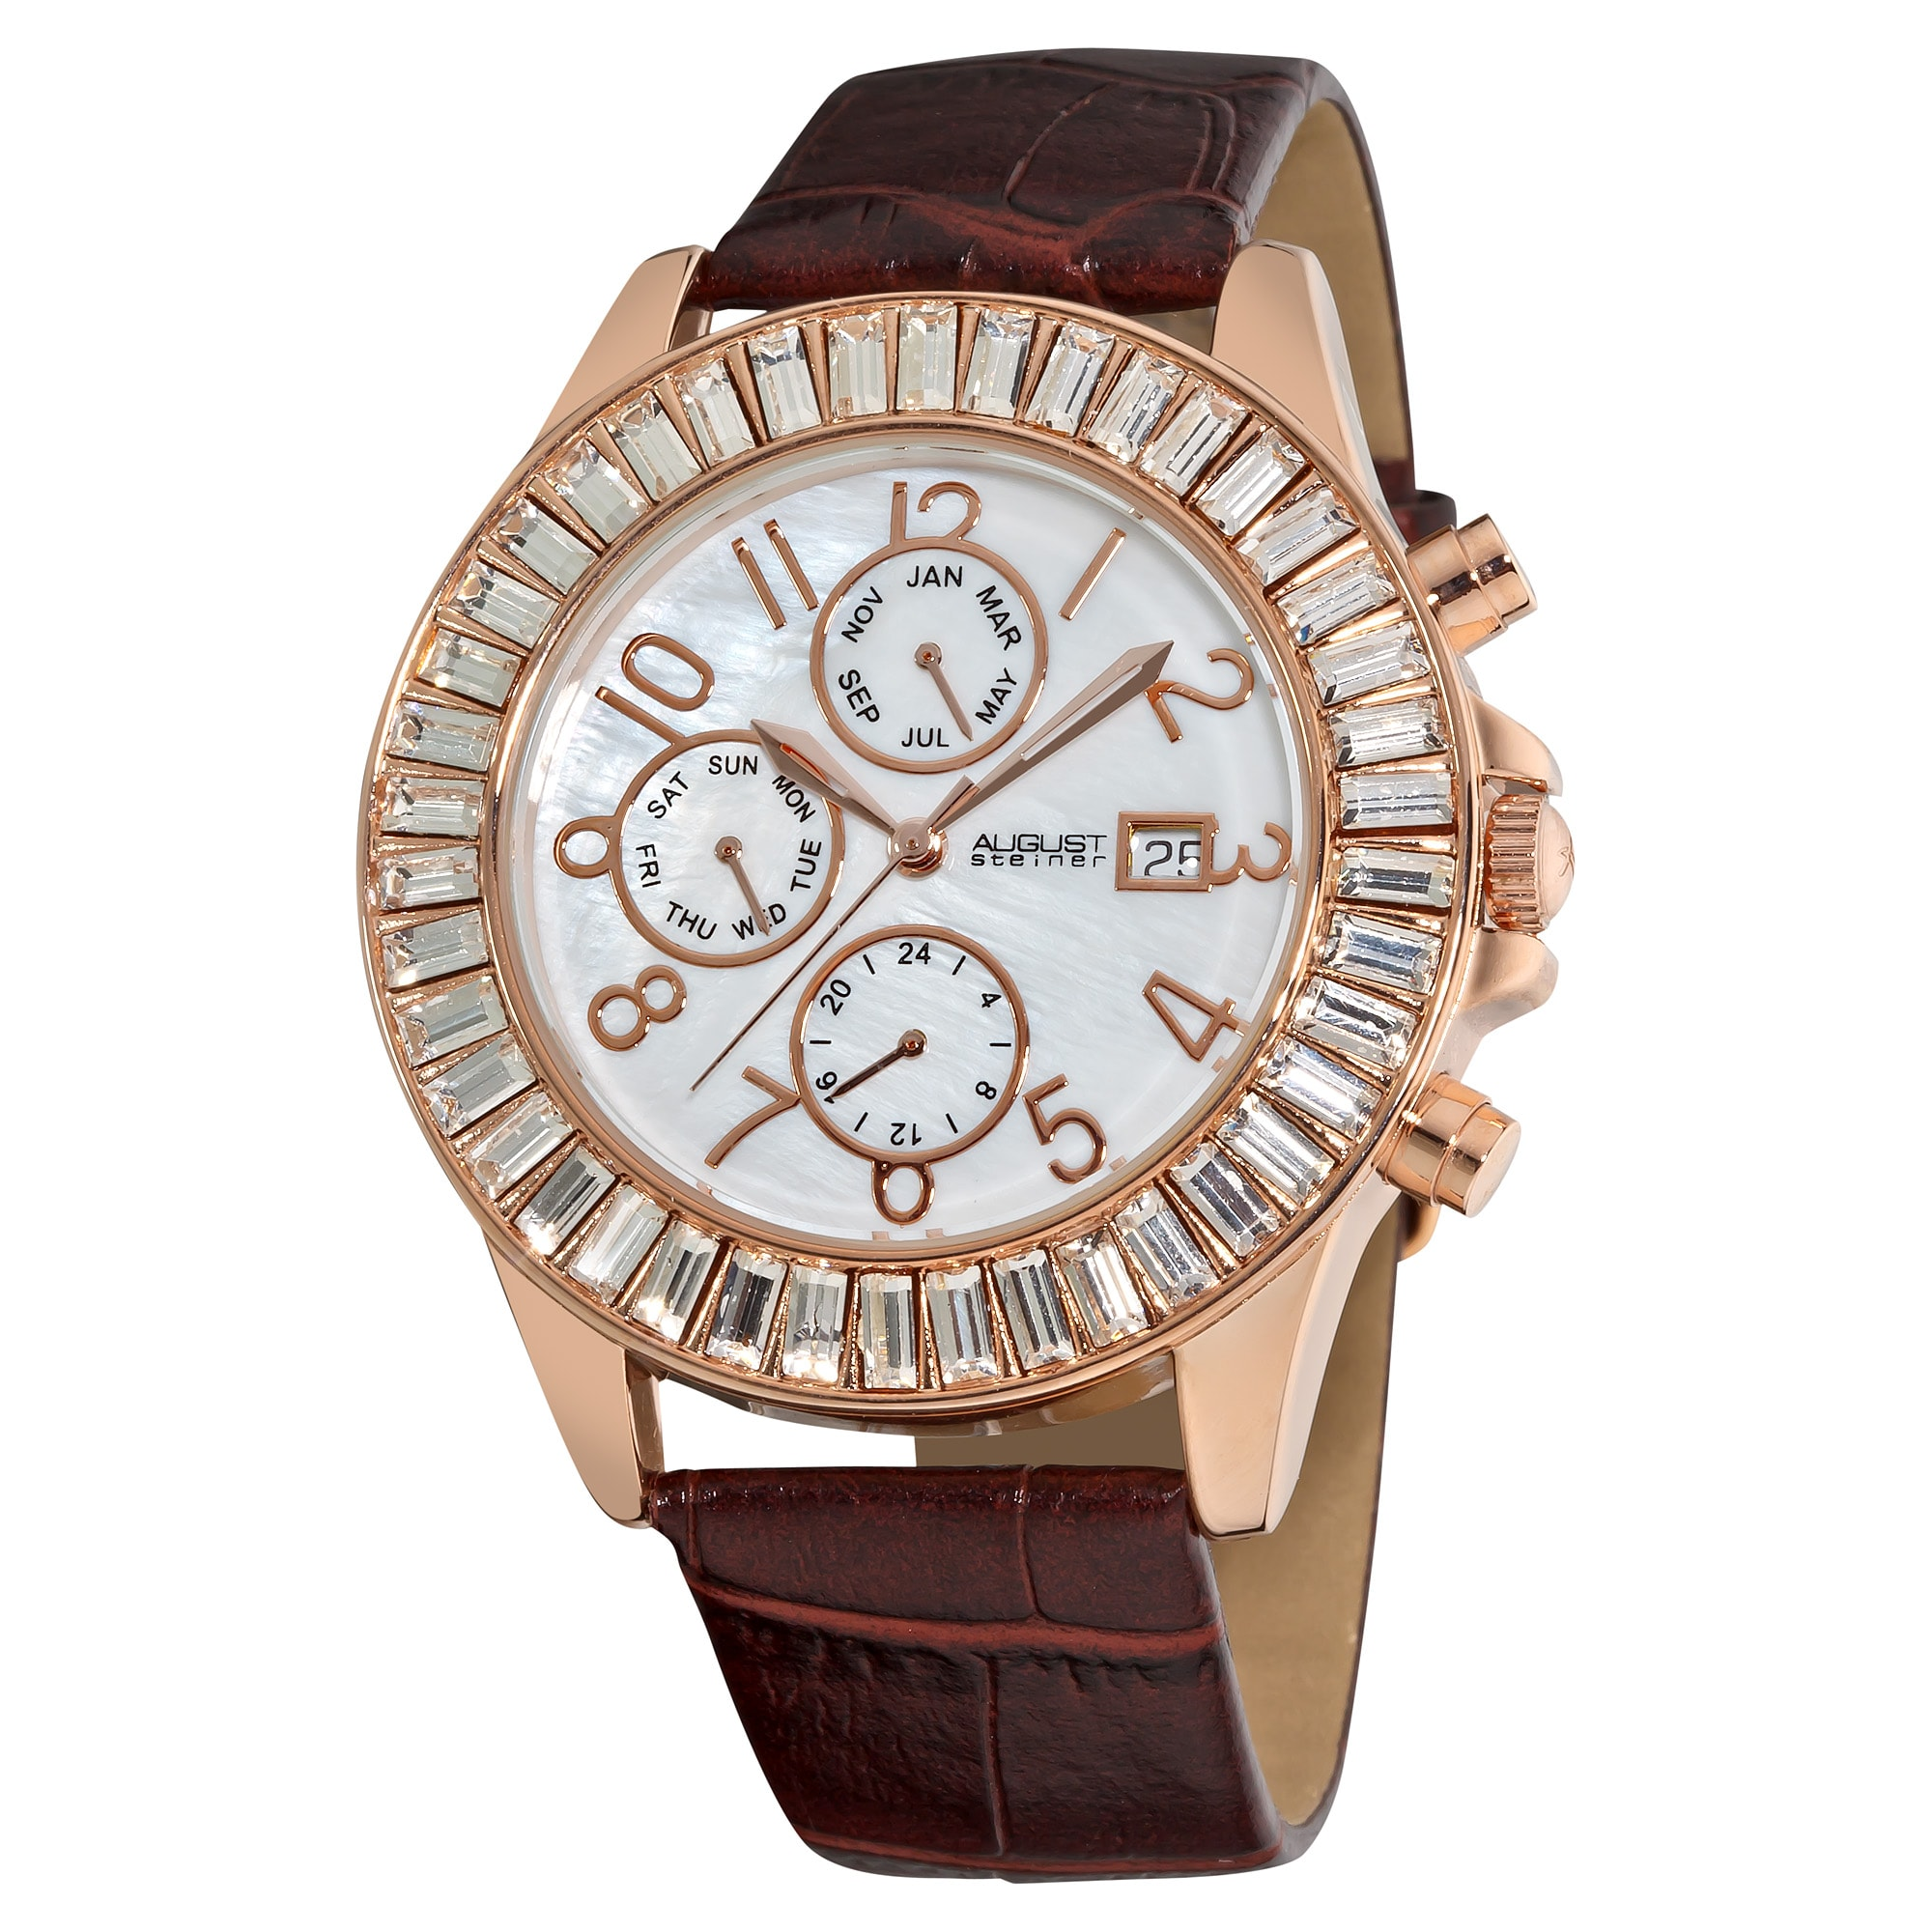 August Steiner Women's Water-resistant Swiss Quartz Baguette Bezel Rose-Tone Watch